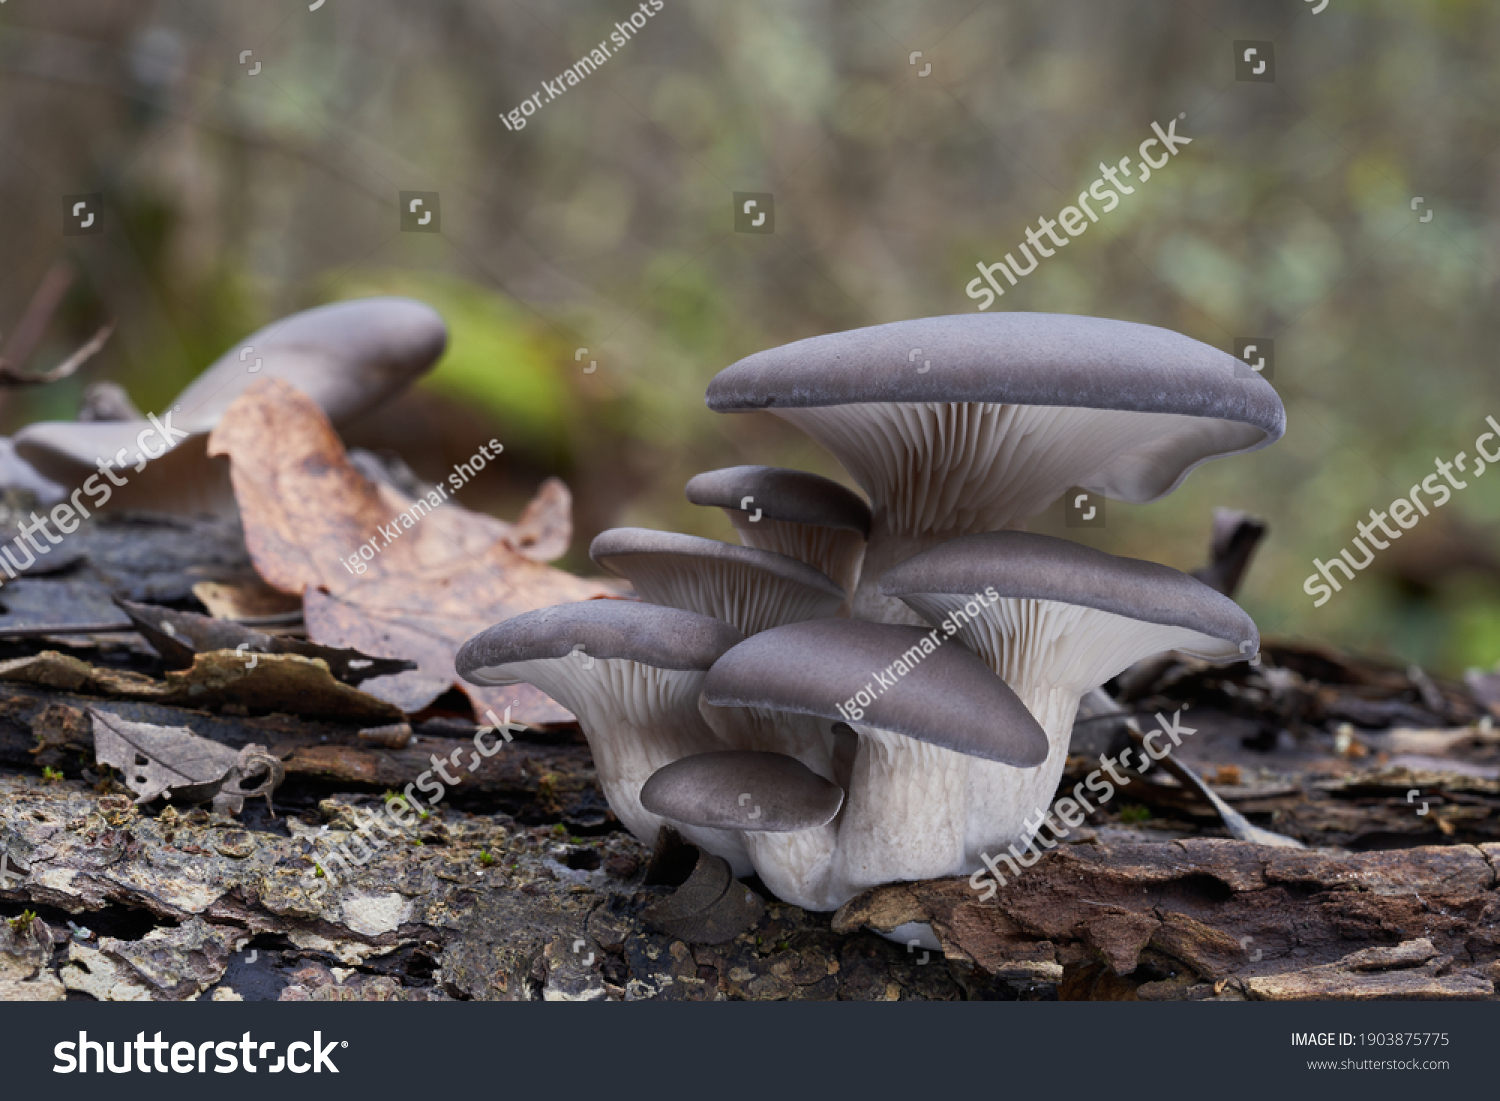 Edible mushroom Pleurotus ostreatus in the floodplain forest. Known as oyster fungus. Group of wild oyster mushrooms growing on the wood.